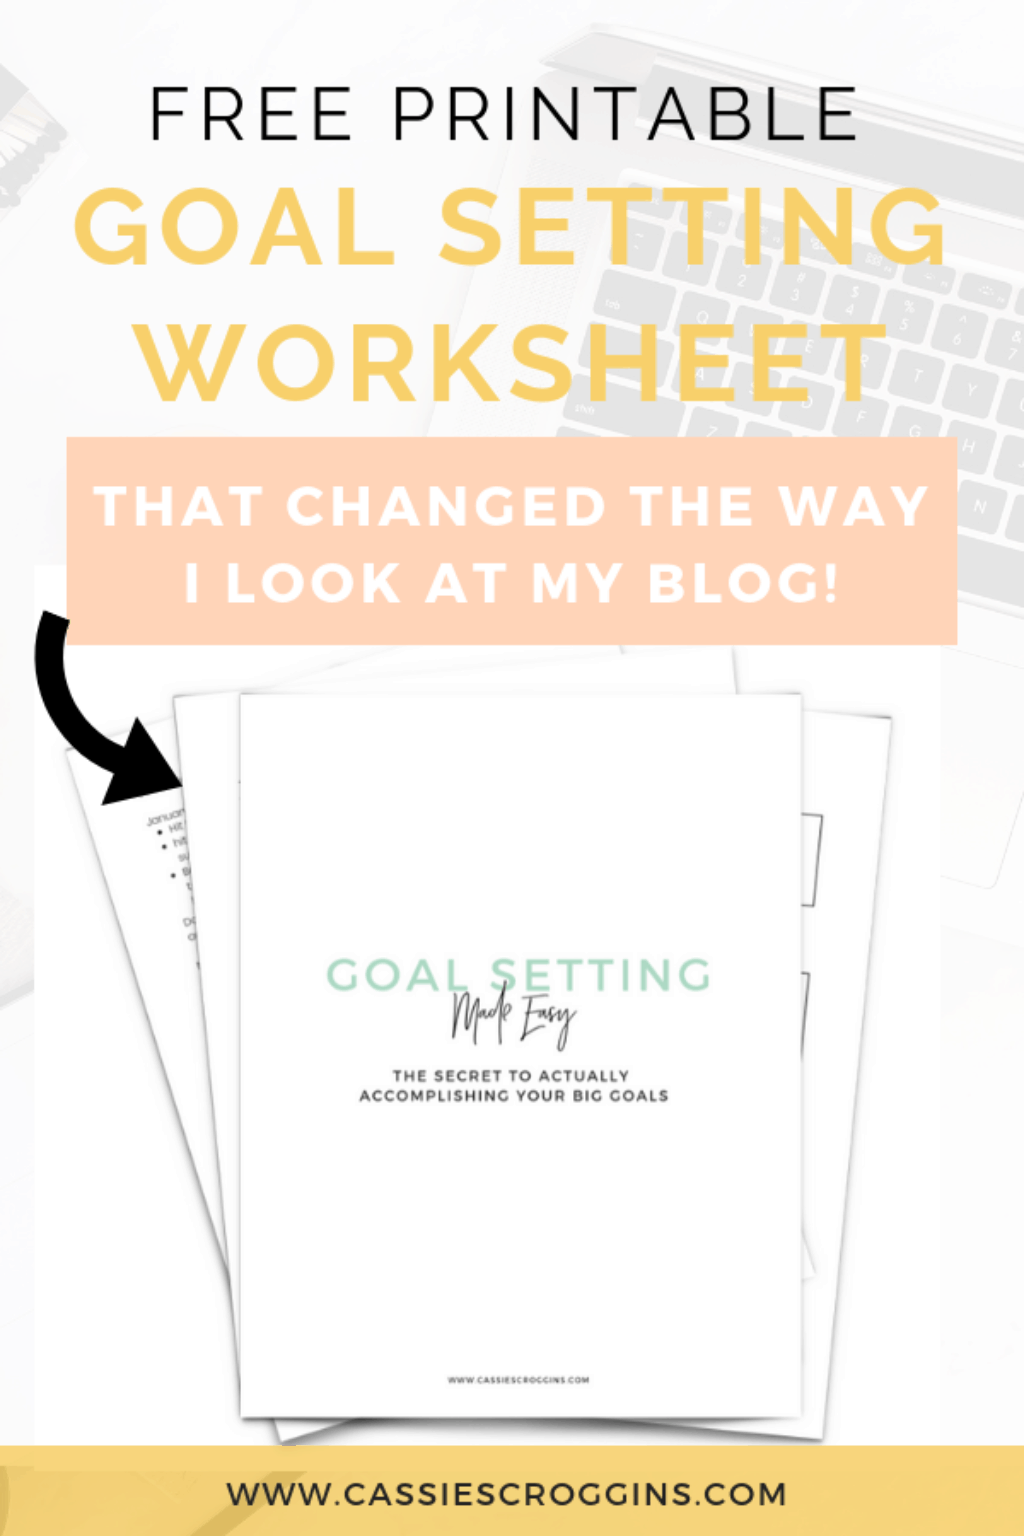 Free Goal Setting Worksheet That Changed The Way I Look At My Blog